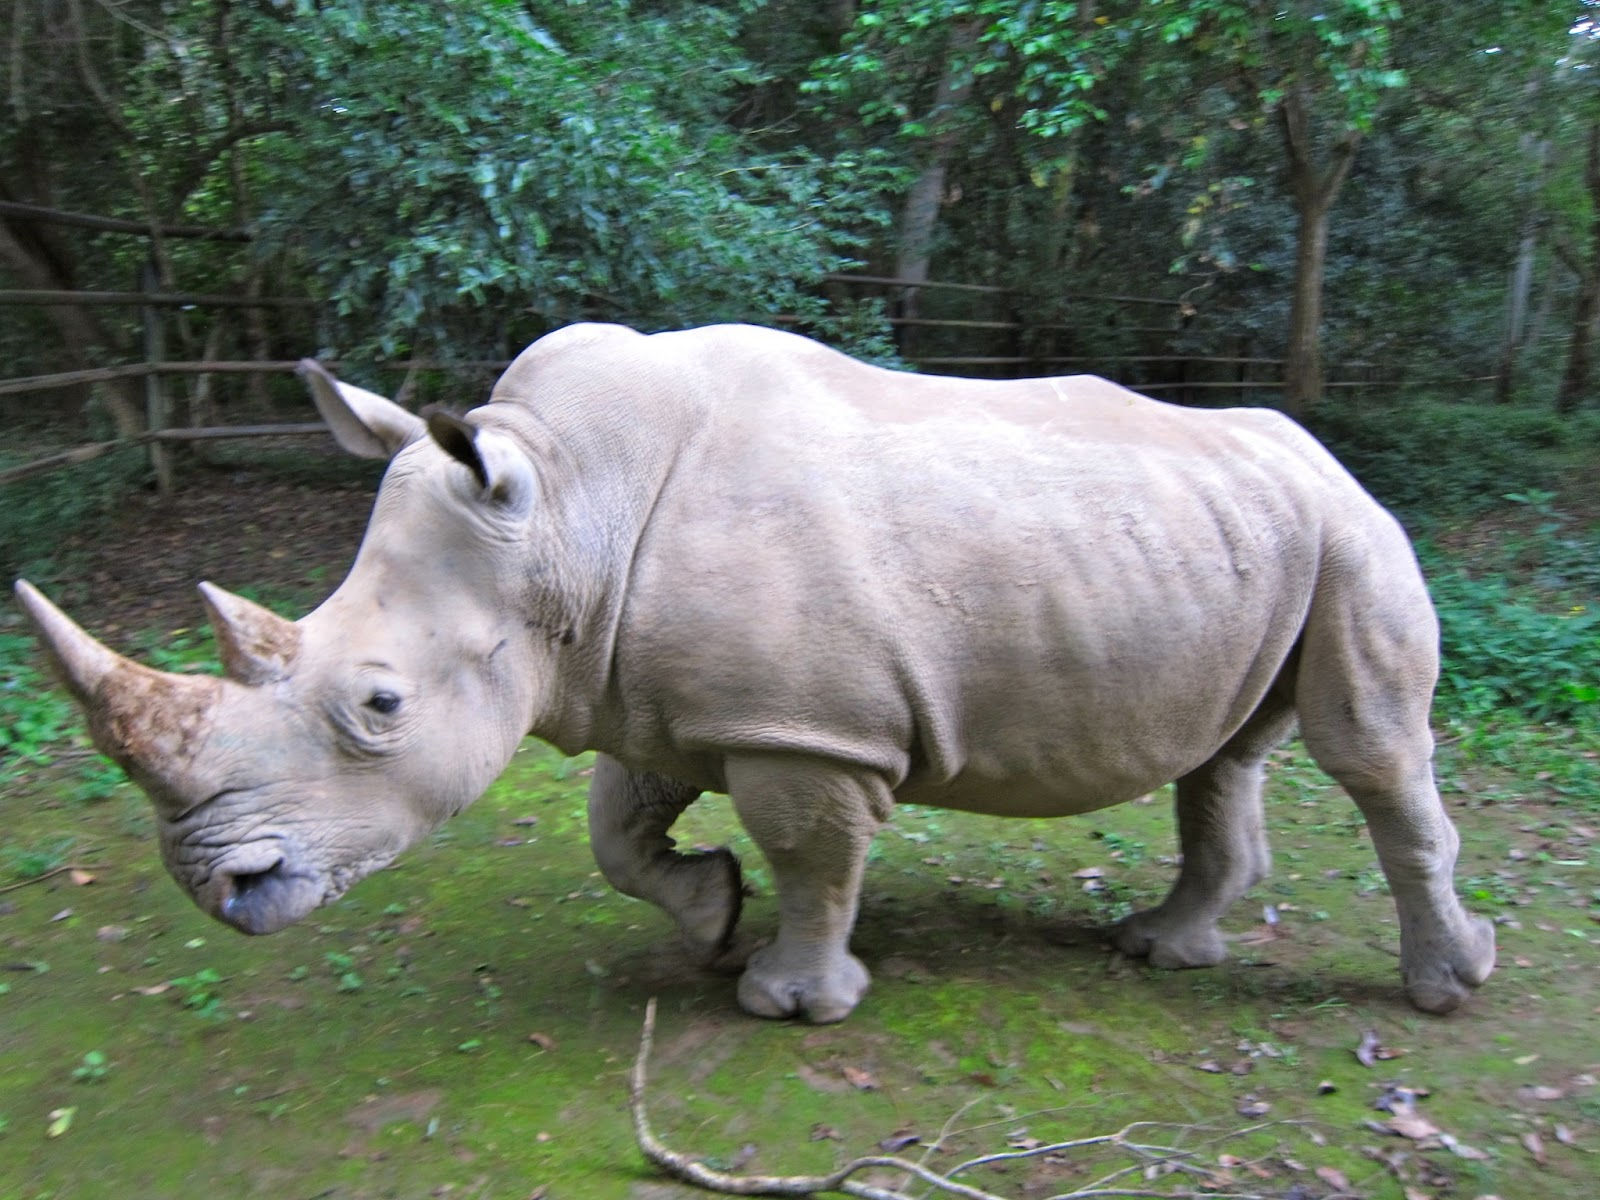 rhino northern population rhinoceros animal animals facts wild species africa dry forest tropical extinct south central decreased five cottoni simum